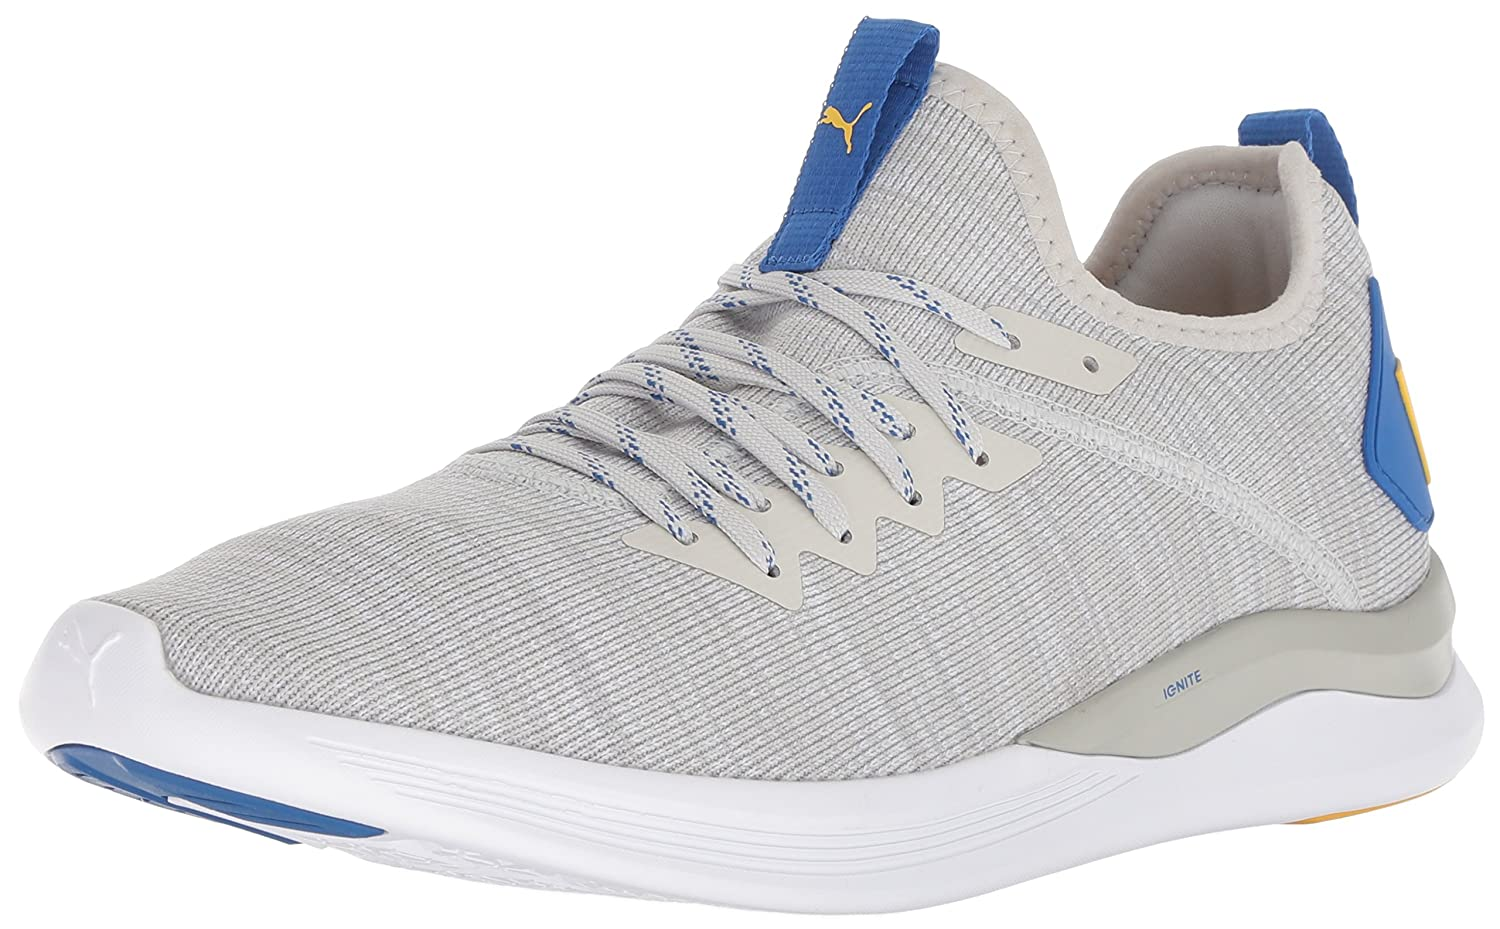 Puma Herren Ignite Flash Evoknit Turnschuh